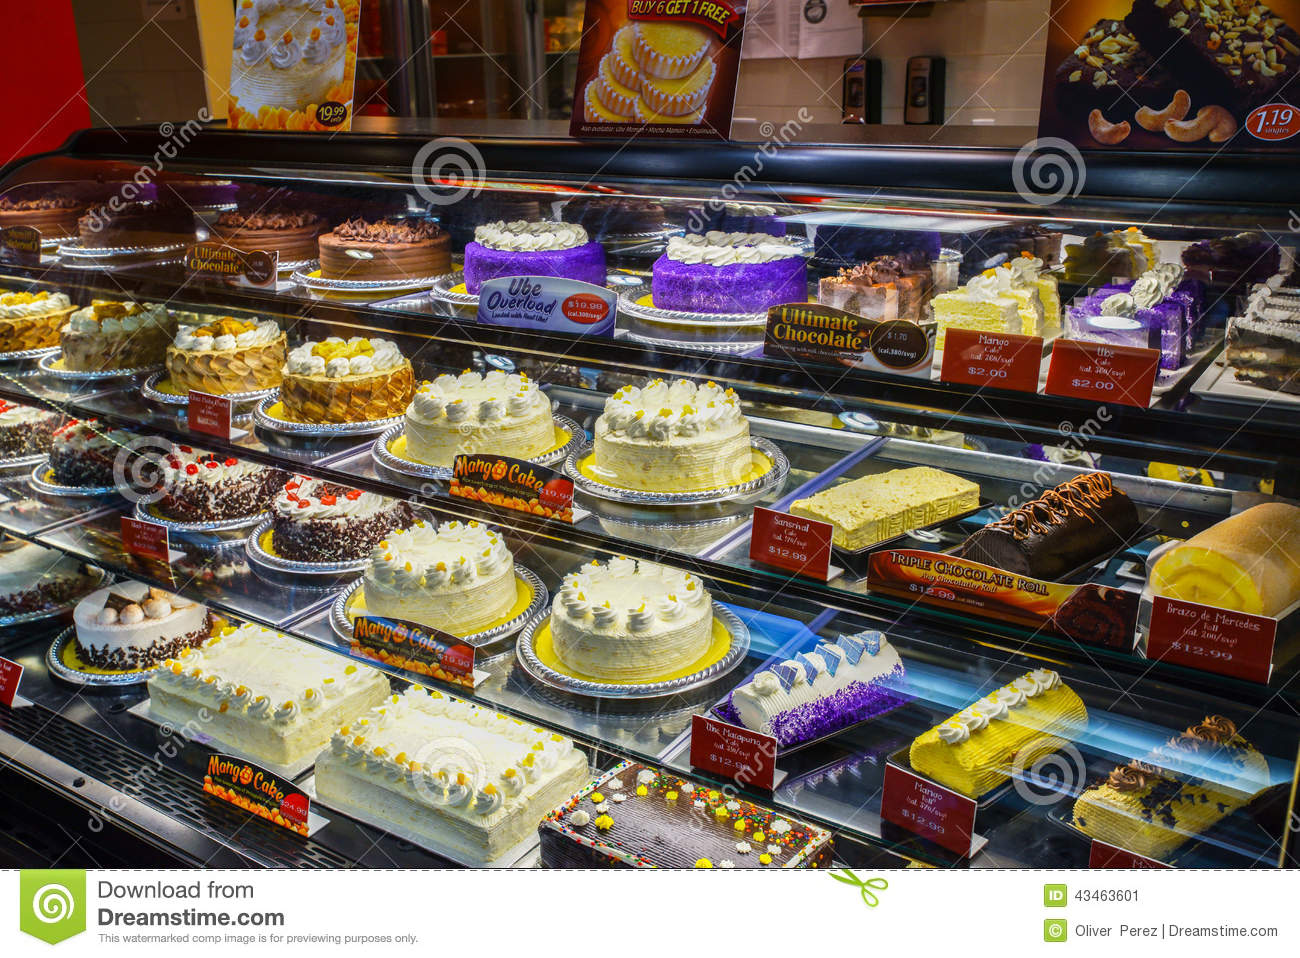 Red Ribbon Bakeshop, Cakes On Display Editorial Photo - Image ...